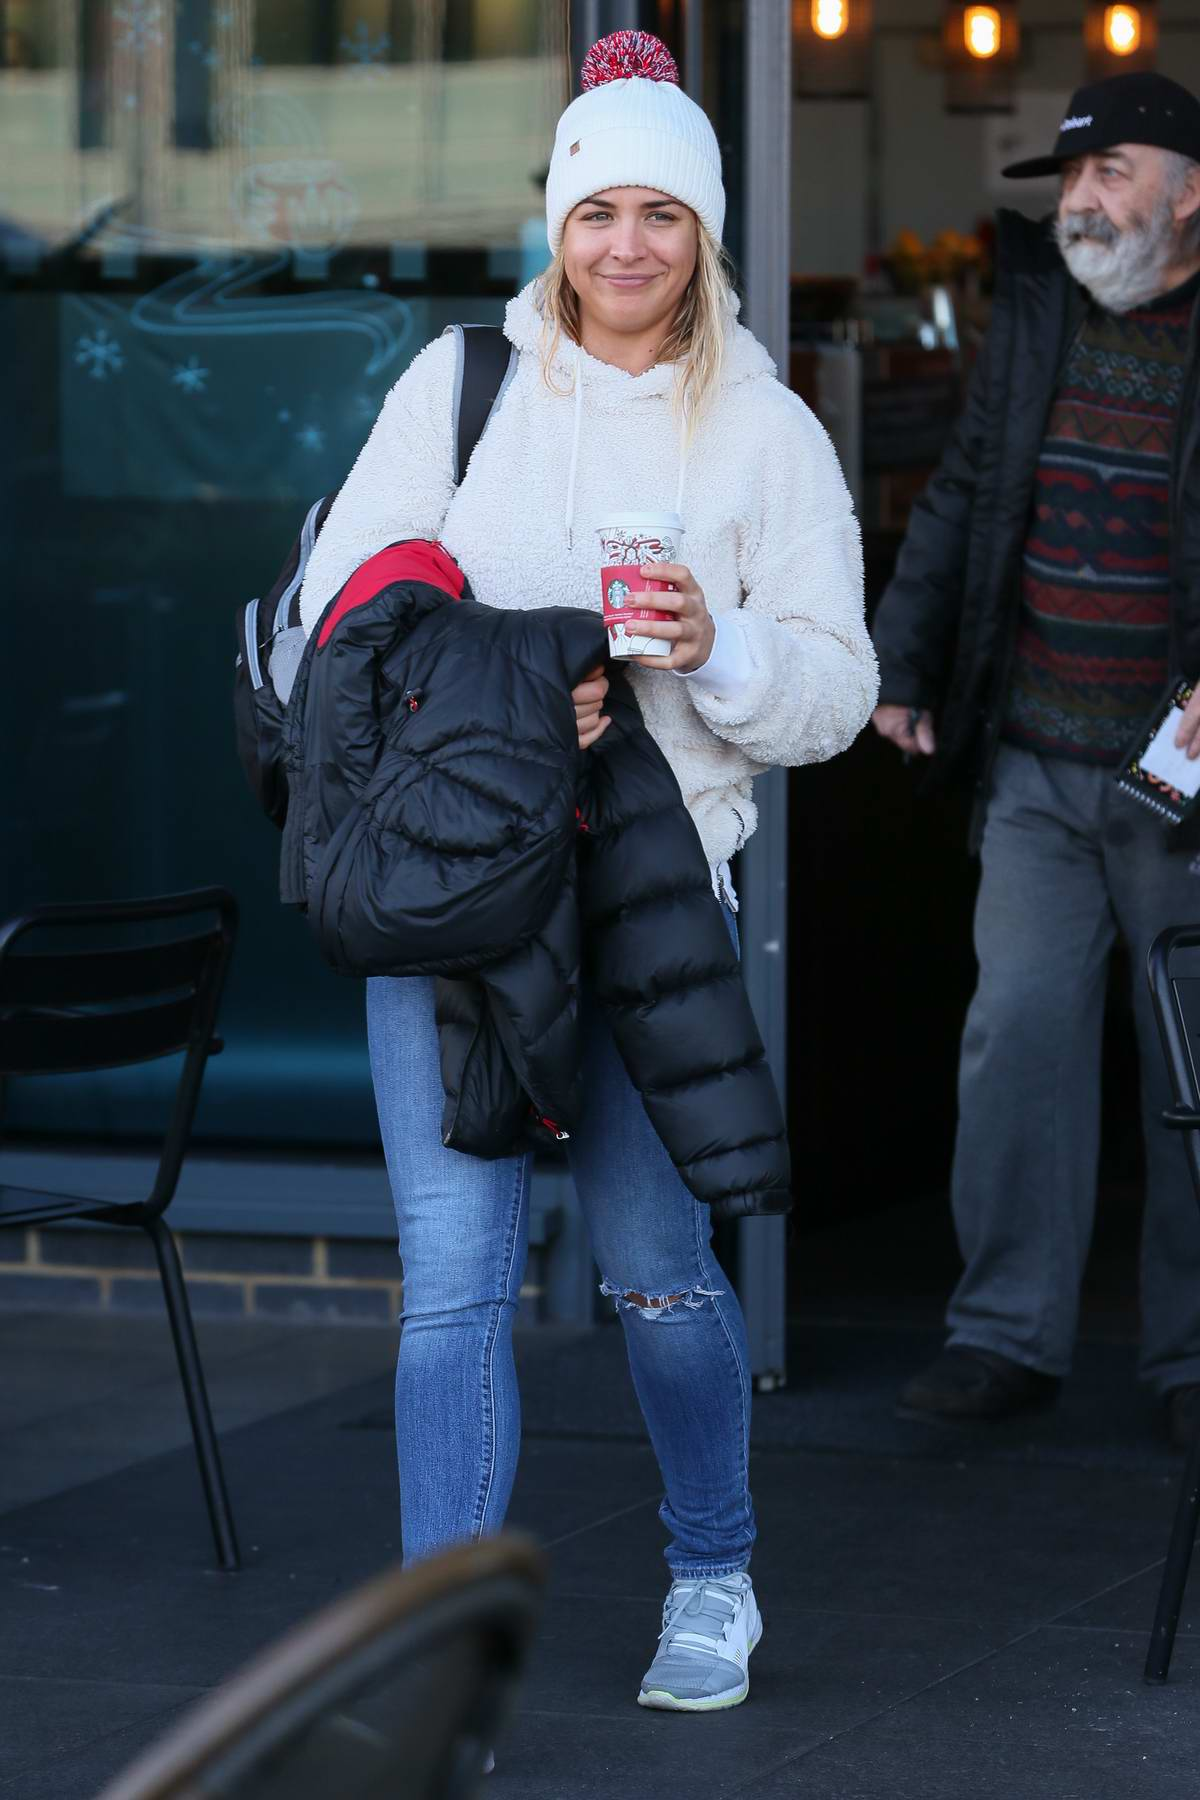 Gemma Atkinson seen wrapped up against the cold frosty morning with a coffee outside the Strictly Come Dancing hotel in London